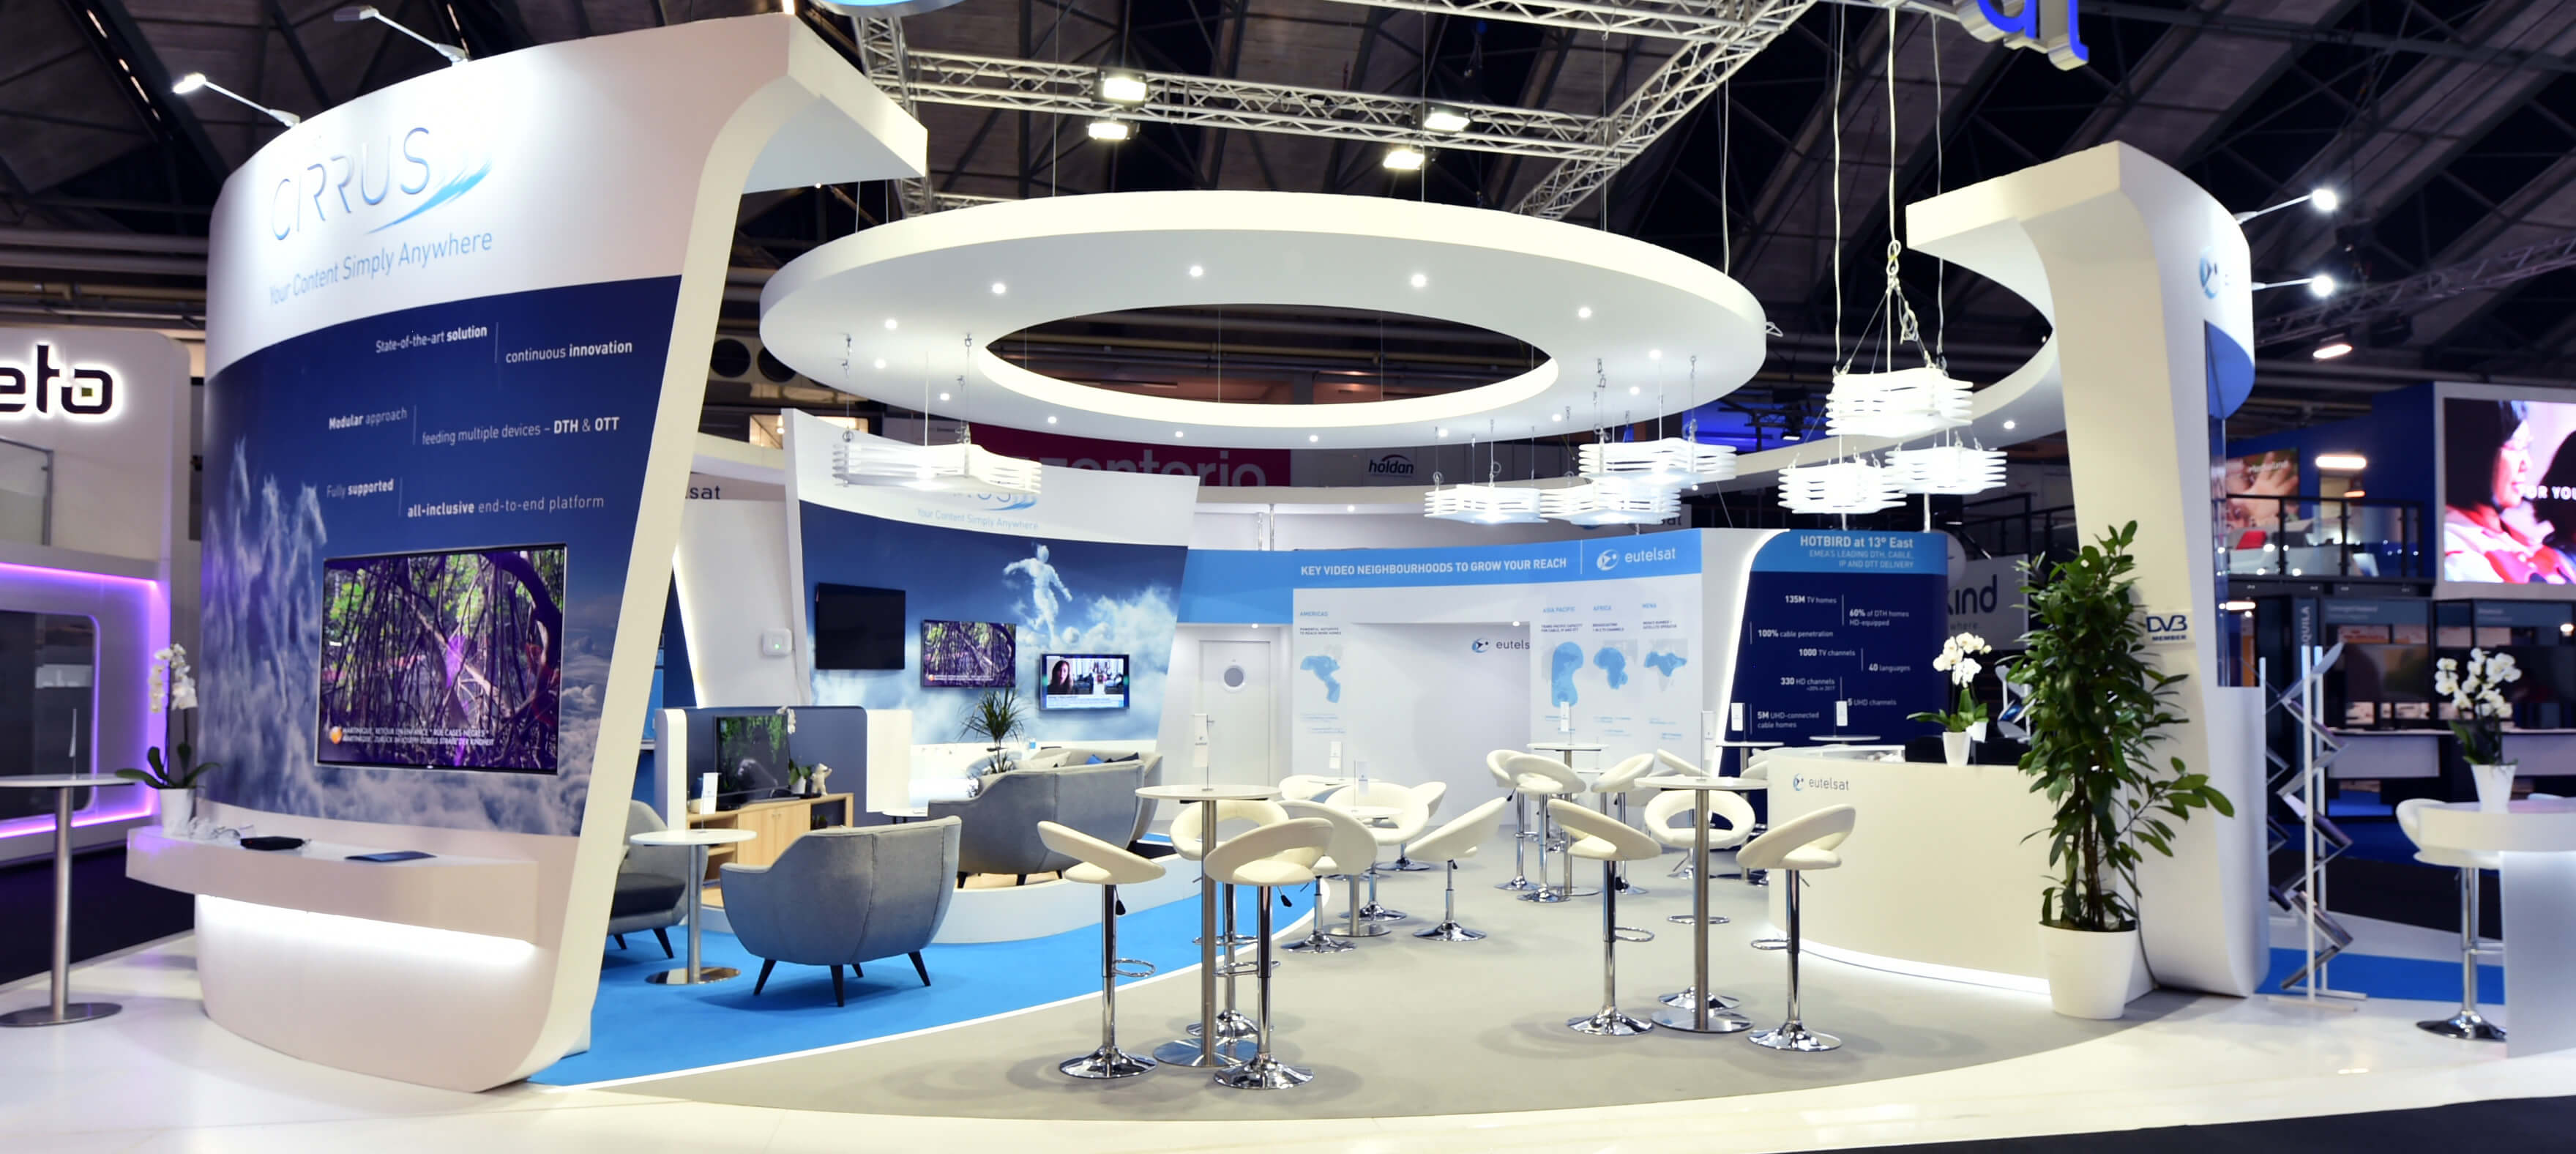 Eutelsat Exhibition Stand Design